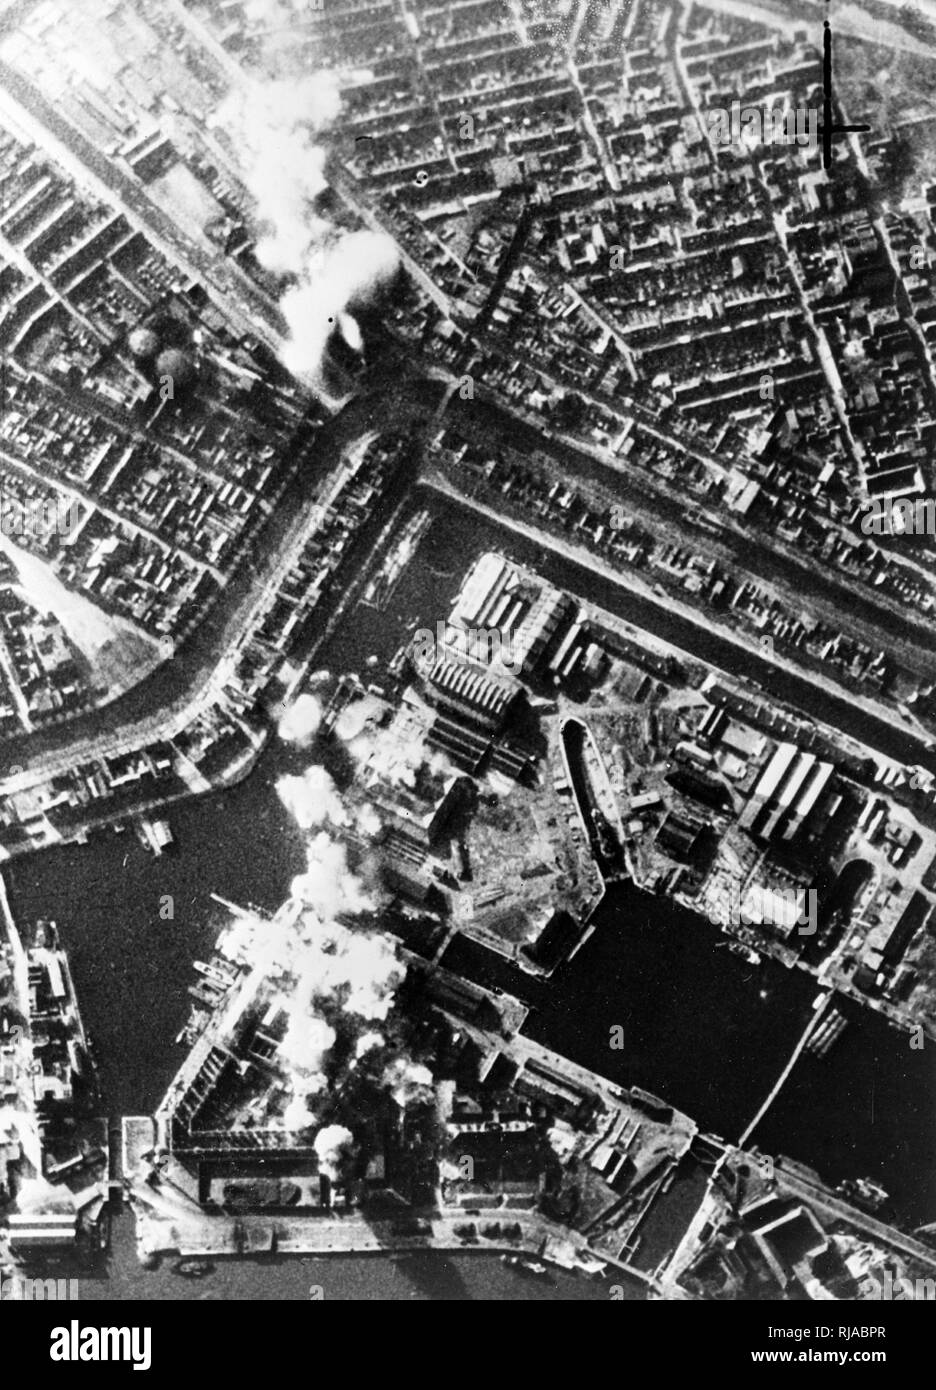 Ventura aircraft of the Royal Air Force Bomber Command, escorted by fighters, carried out a daylight attack on the Royal Dutch blast furnaces and steelworks at Ijmuiden, Holland, on February 13, 1943. World War Two - Stock Image